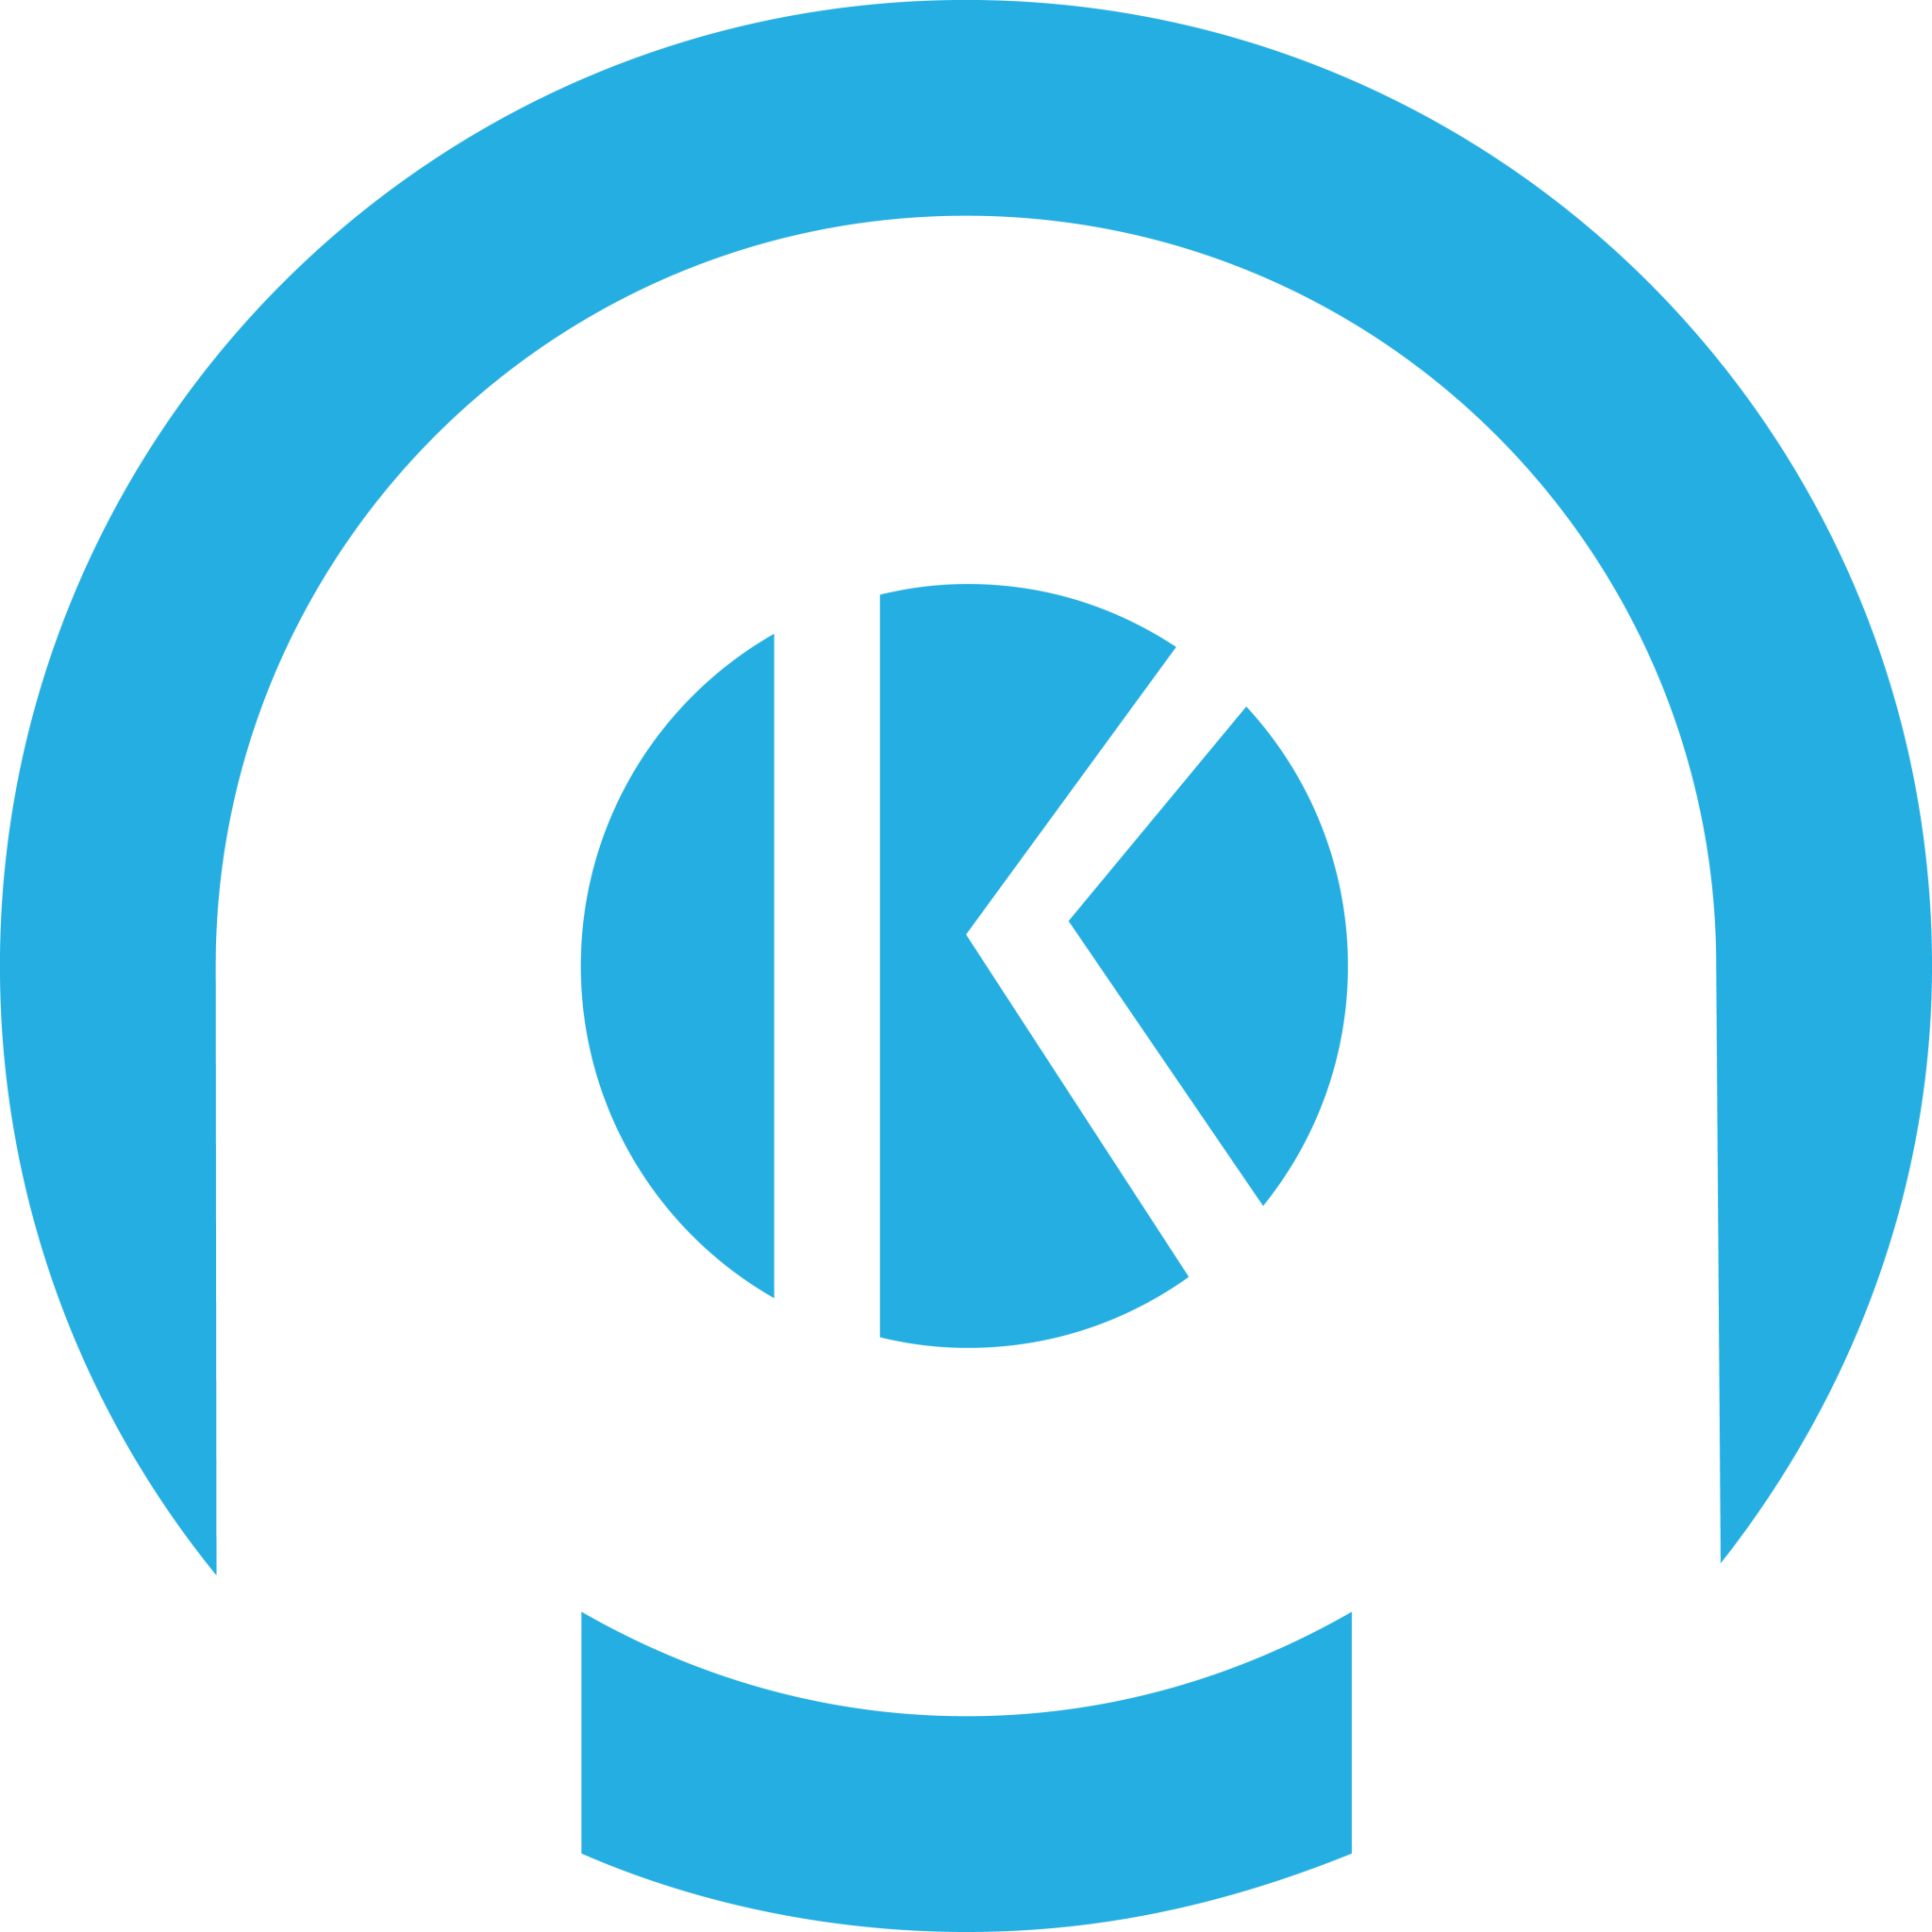 krush logo color